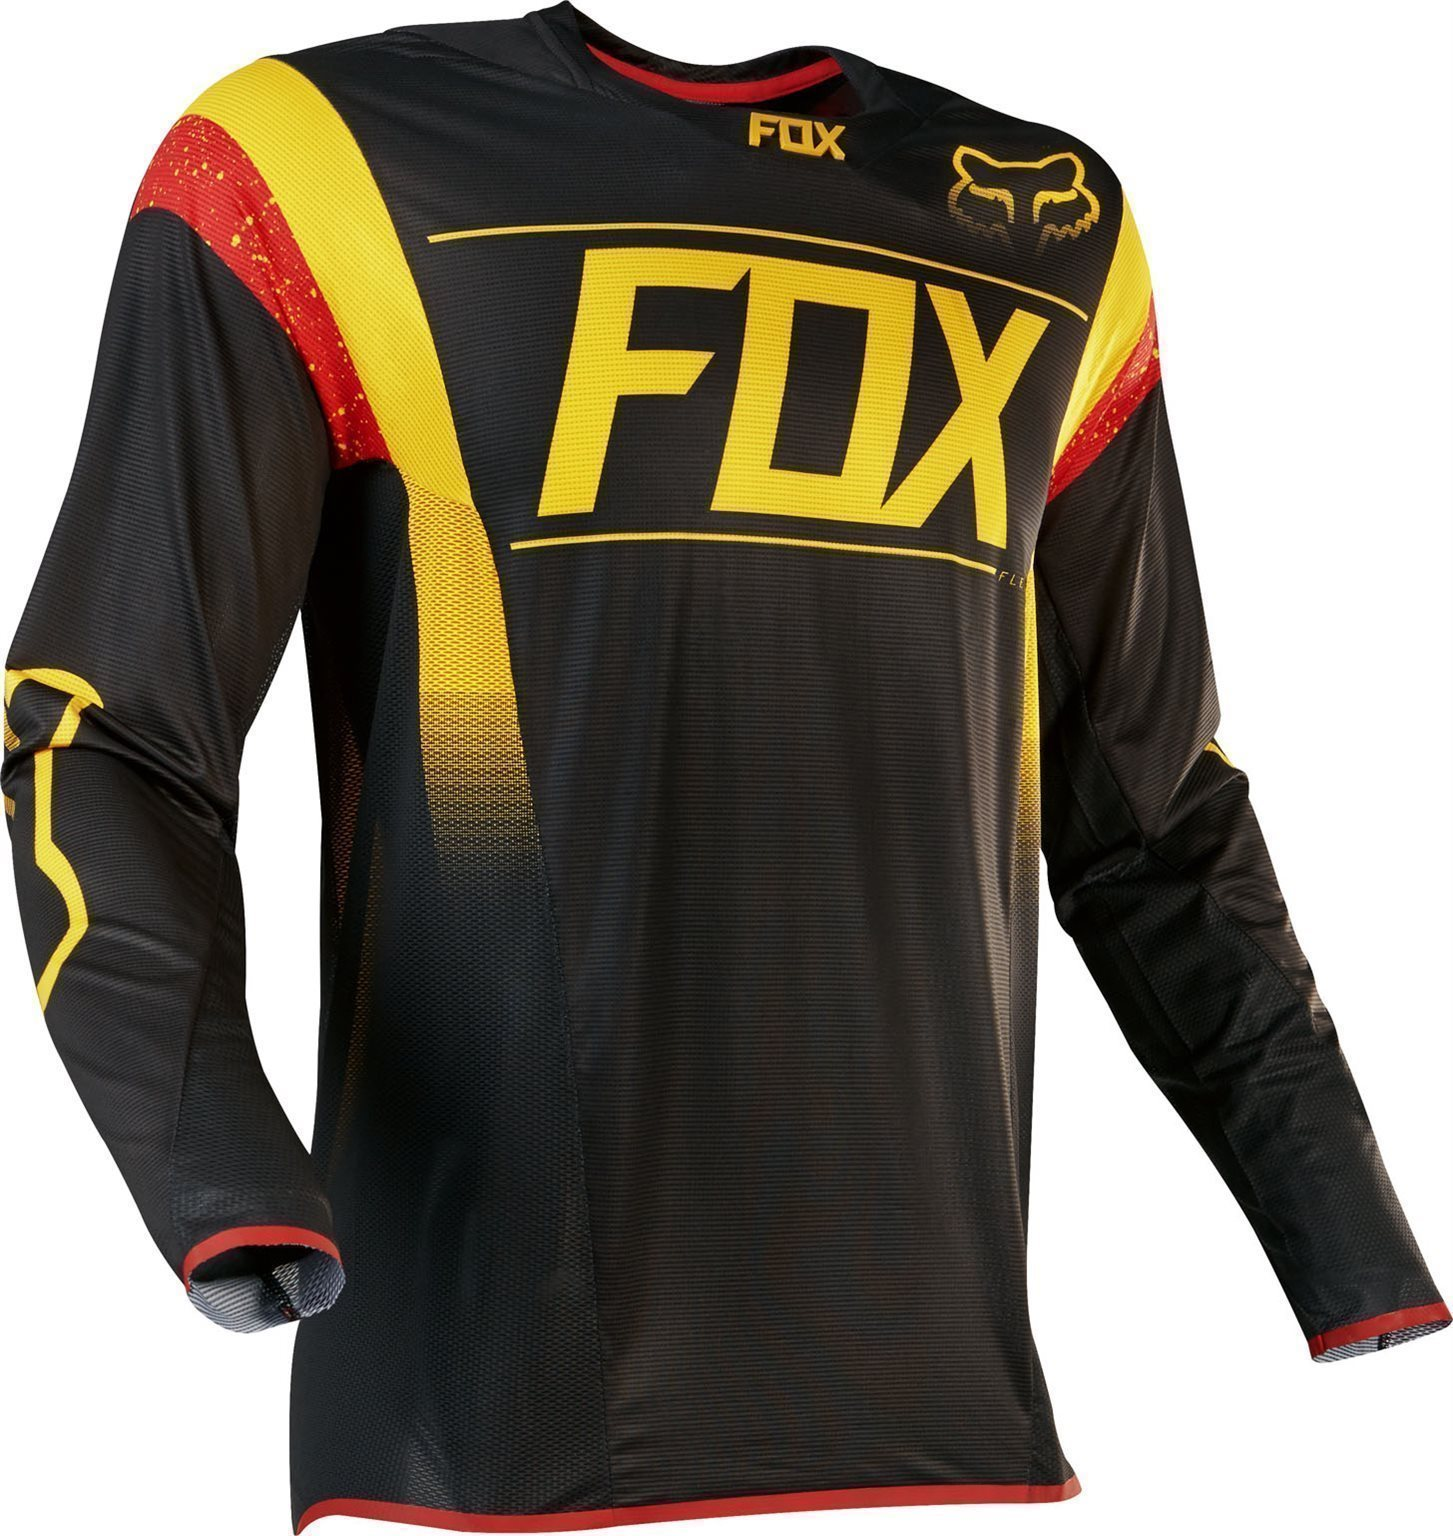 Fox cross mez Flexair MXON Ken Roczen